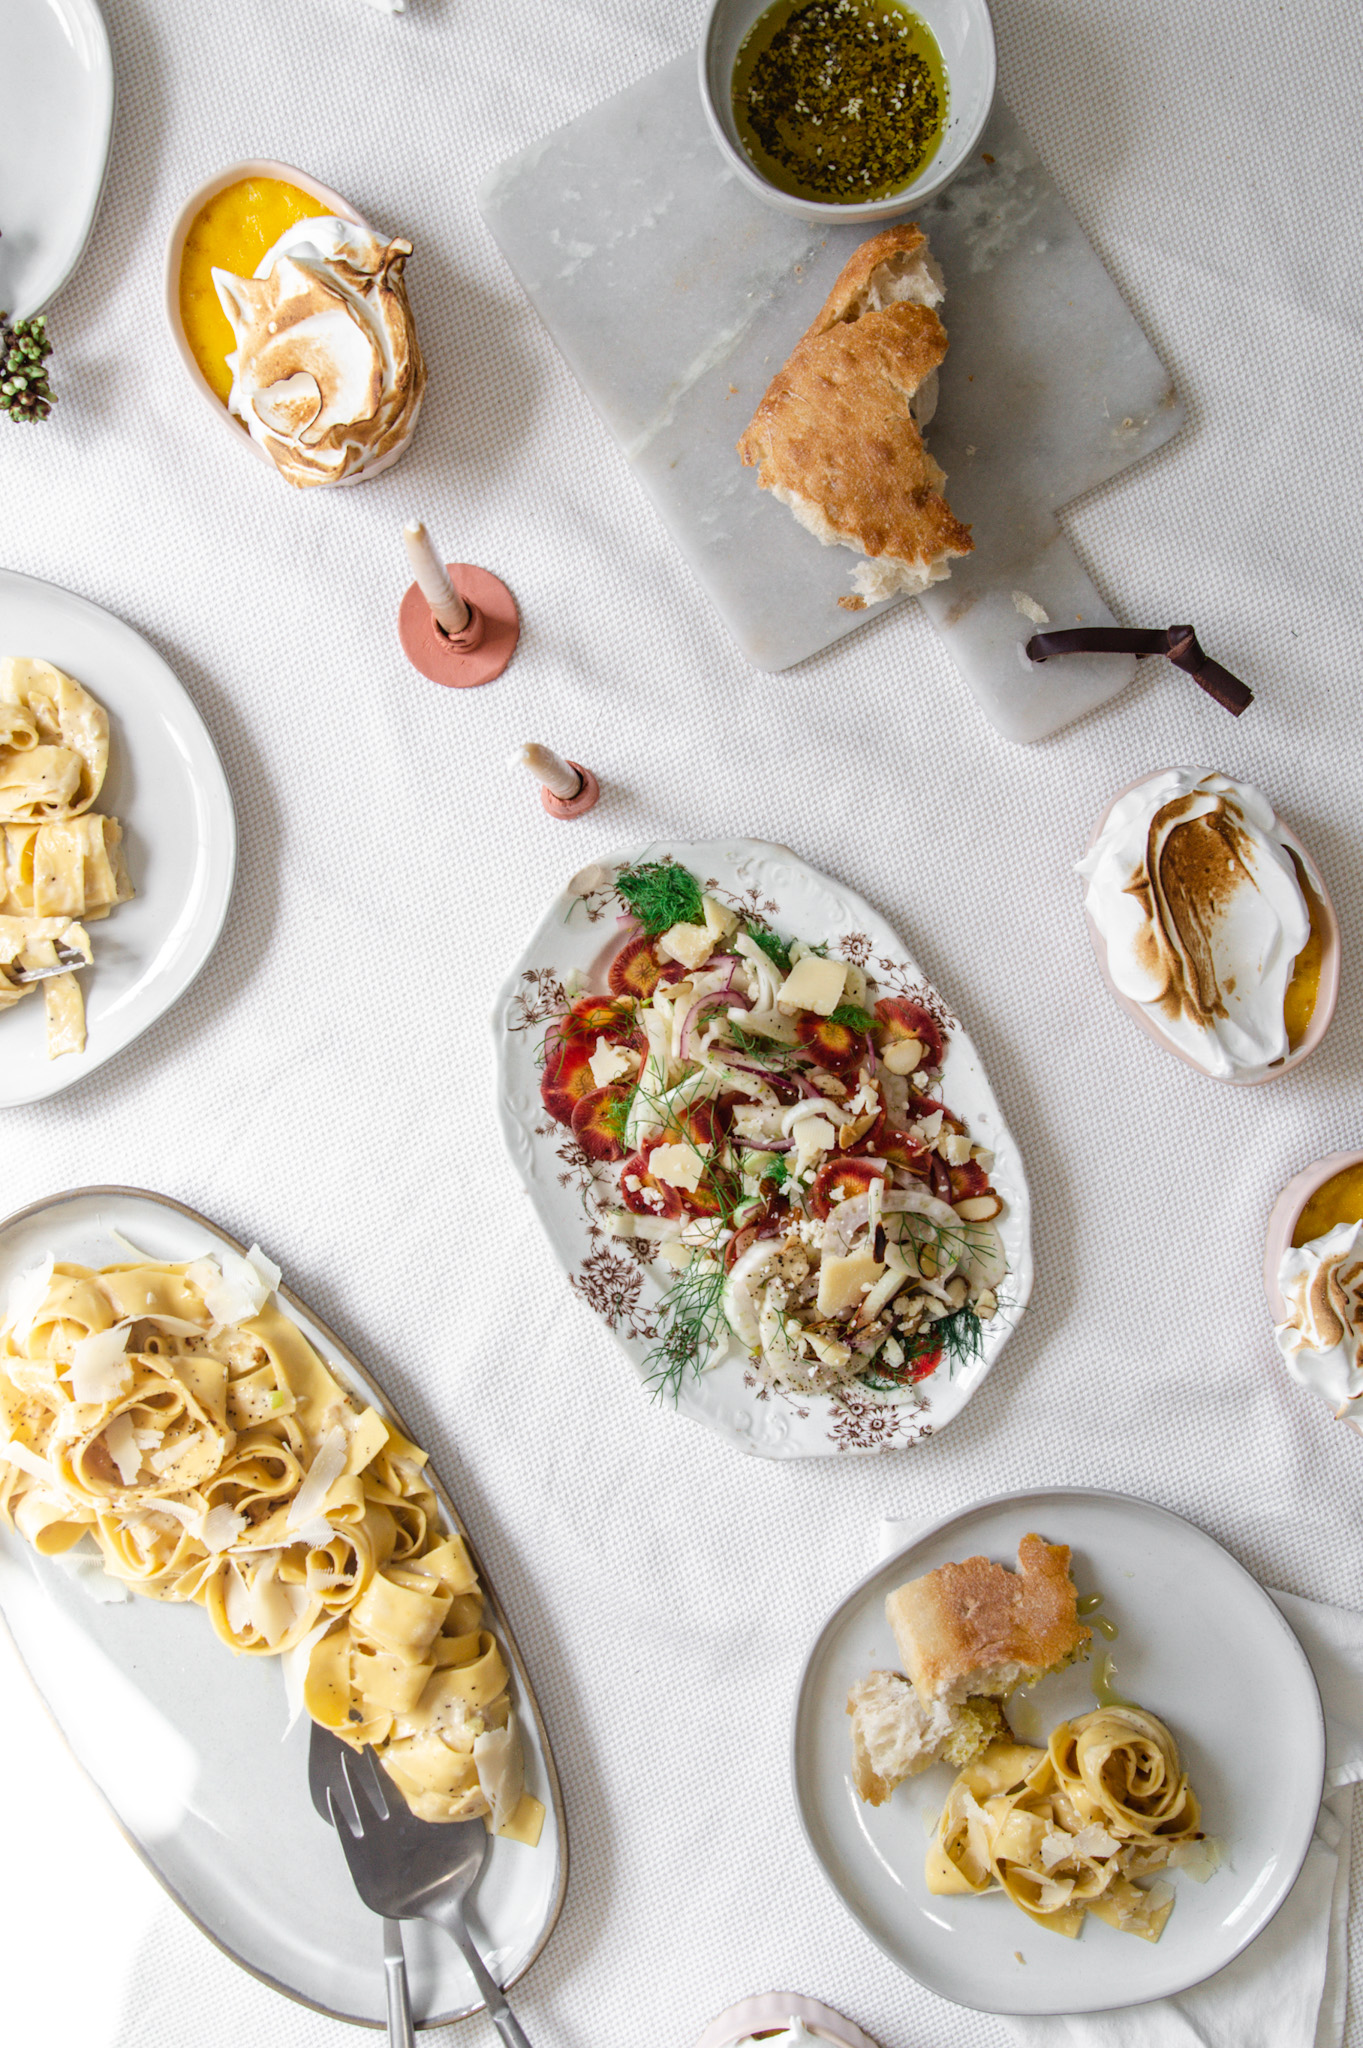 An understated Easter dinner for just our family. Shaved fennel salad. Pasta carbonara and individual orange blossom custards.